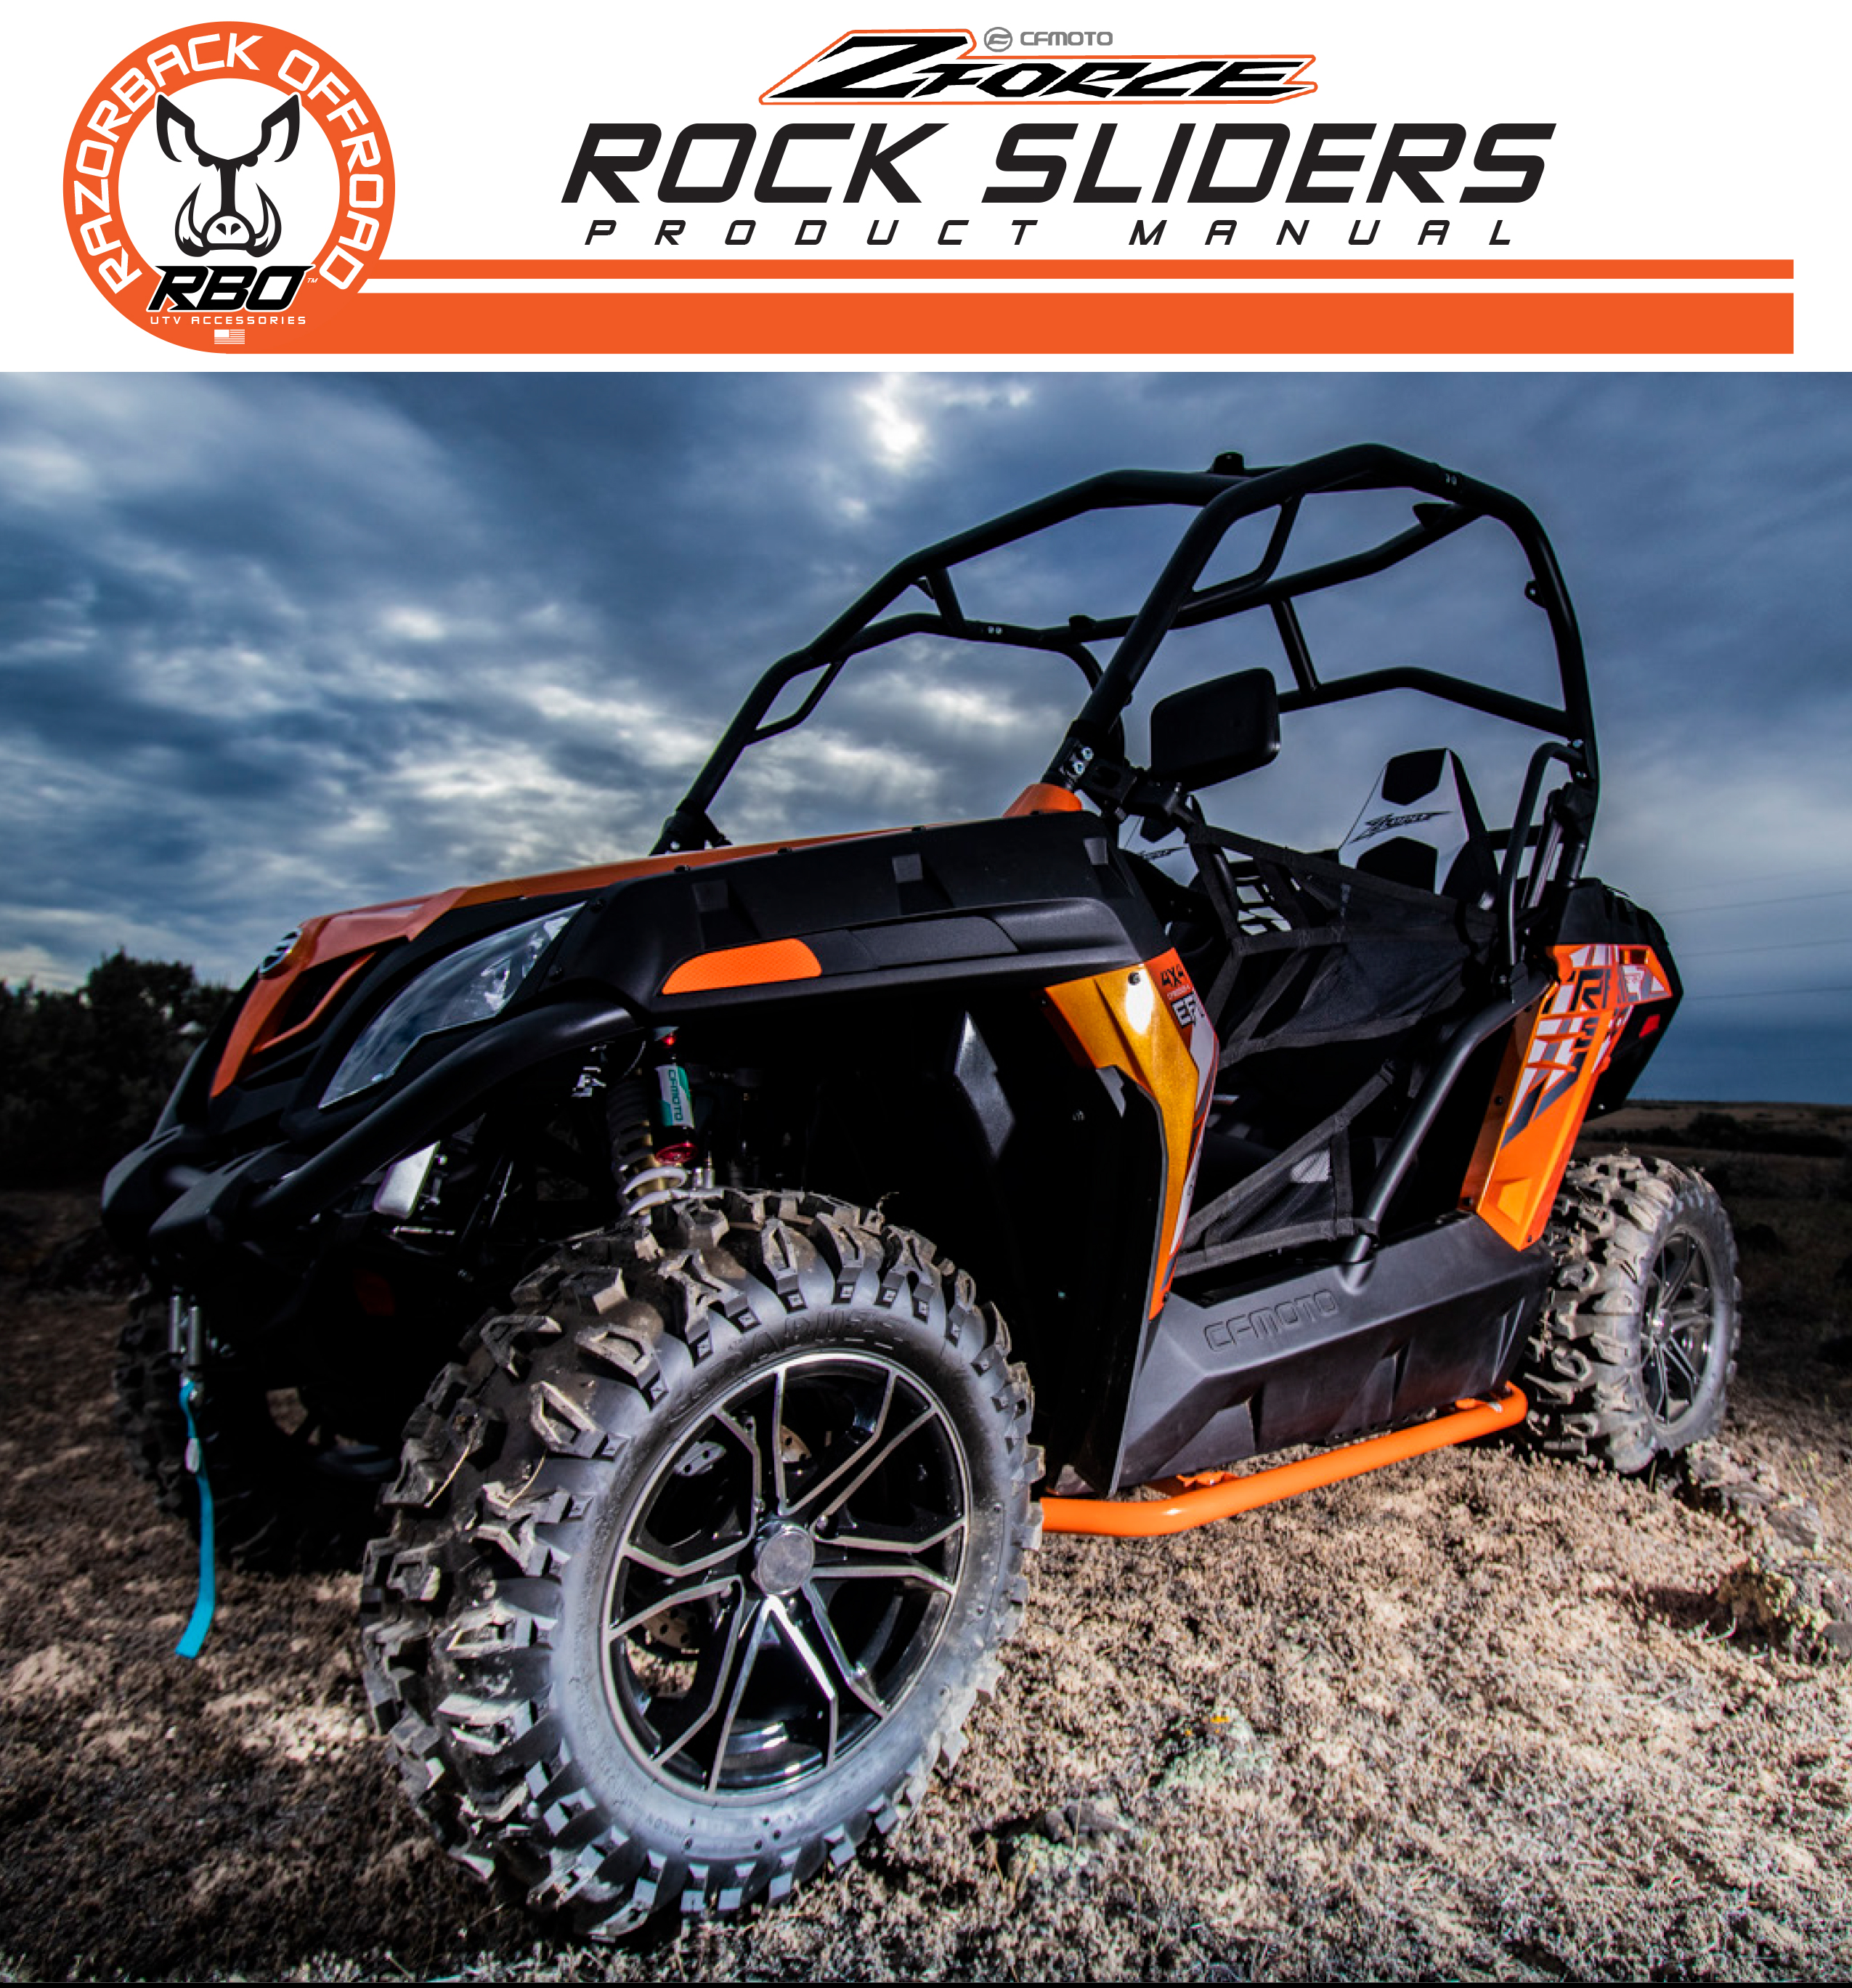 RBO-CF-Moto-Zforce-Rock-Sliders-Product-Manual-RBO0071-1